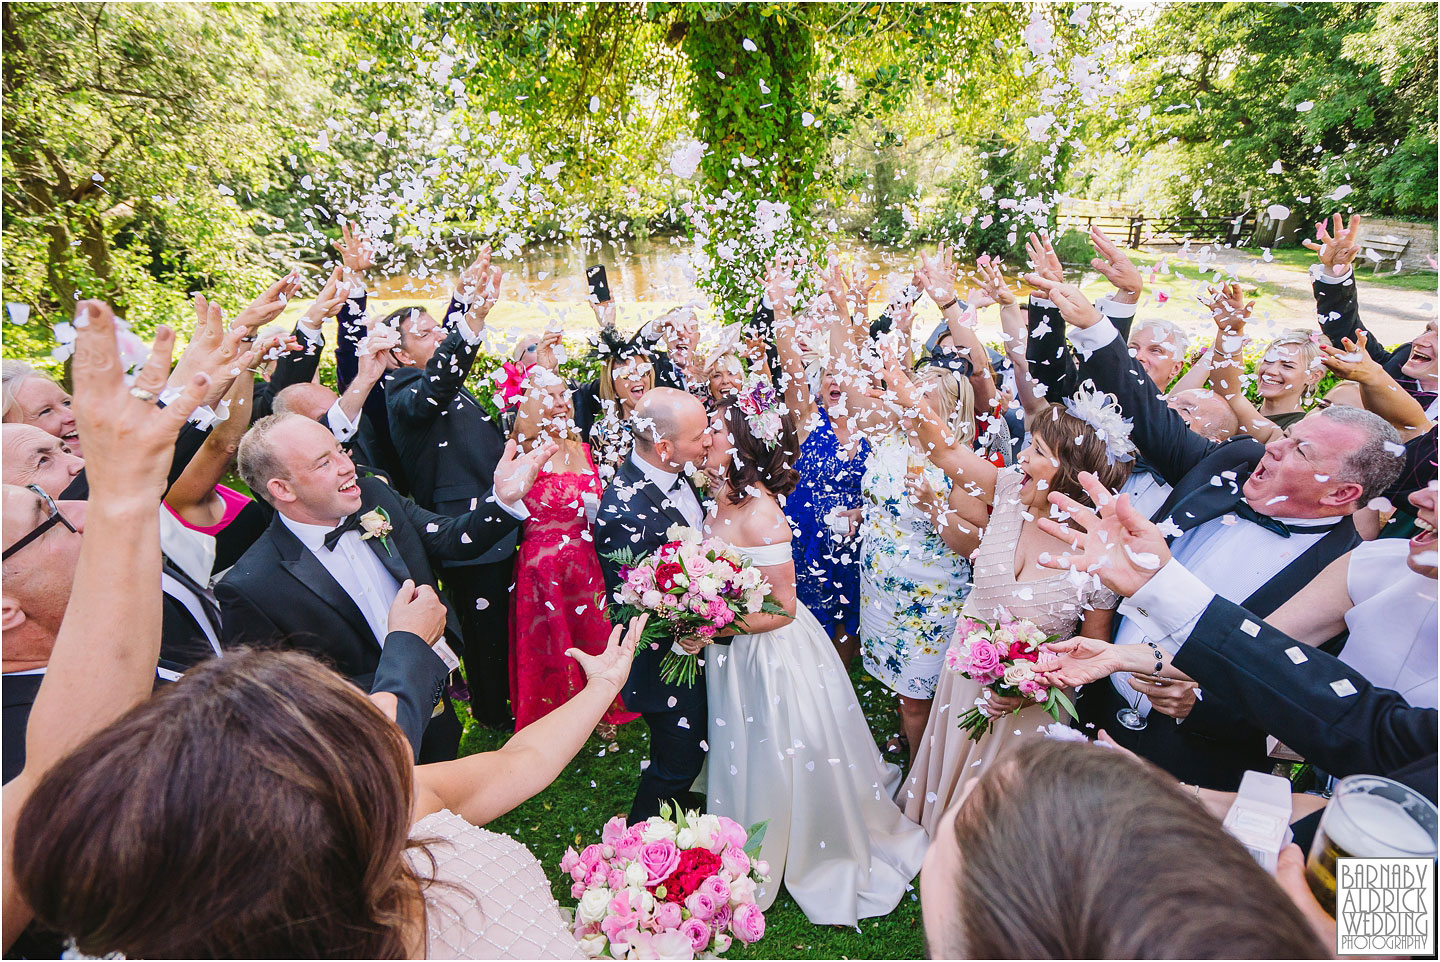 Confetti at the Pheasant, Harome Wedding Photography, The Pheasant Hotel Wedding, Wedding Photography at The Pheasant Hotel North Yorkshire, North Yorkshire Wedding Photographer